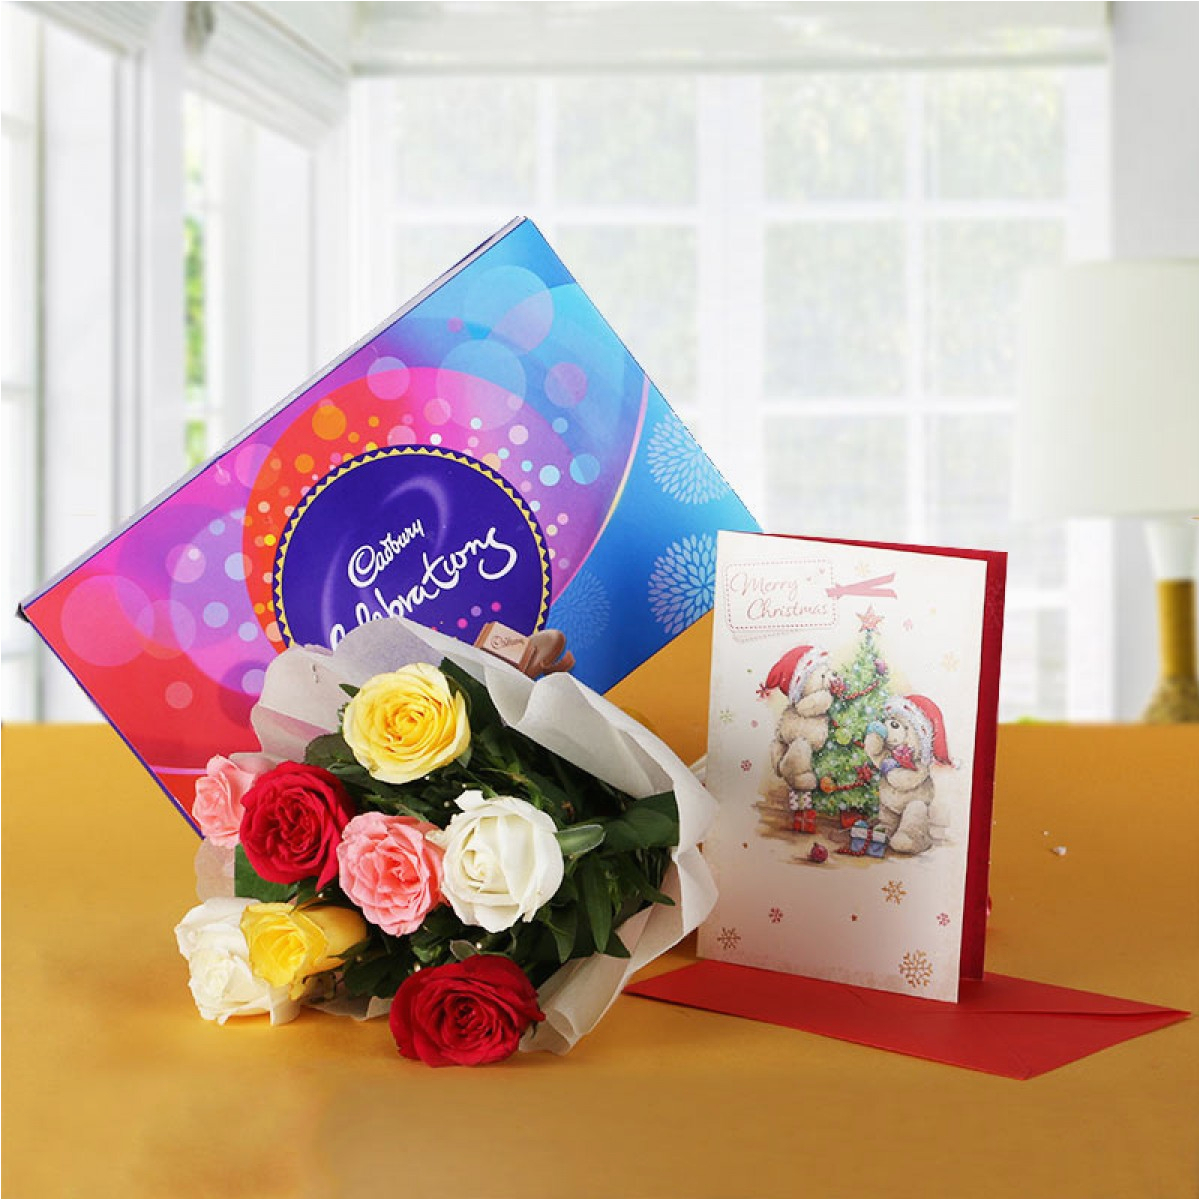 Birthday Card and Flowers Delivery 6 Roses with Cadbury 39 S Celebration and Greeting Card